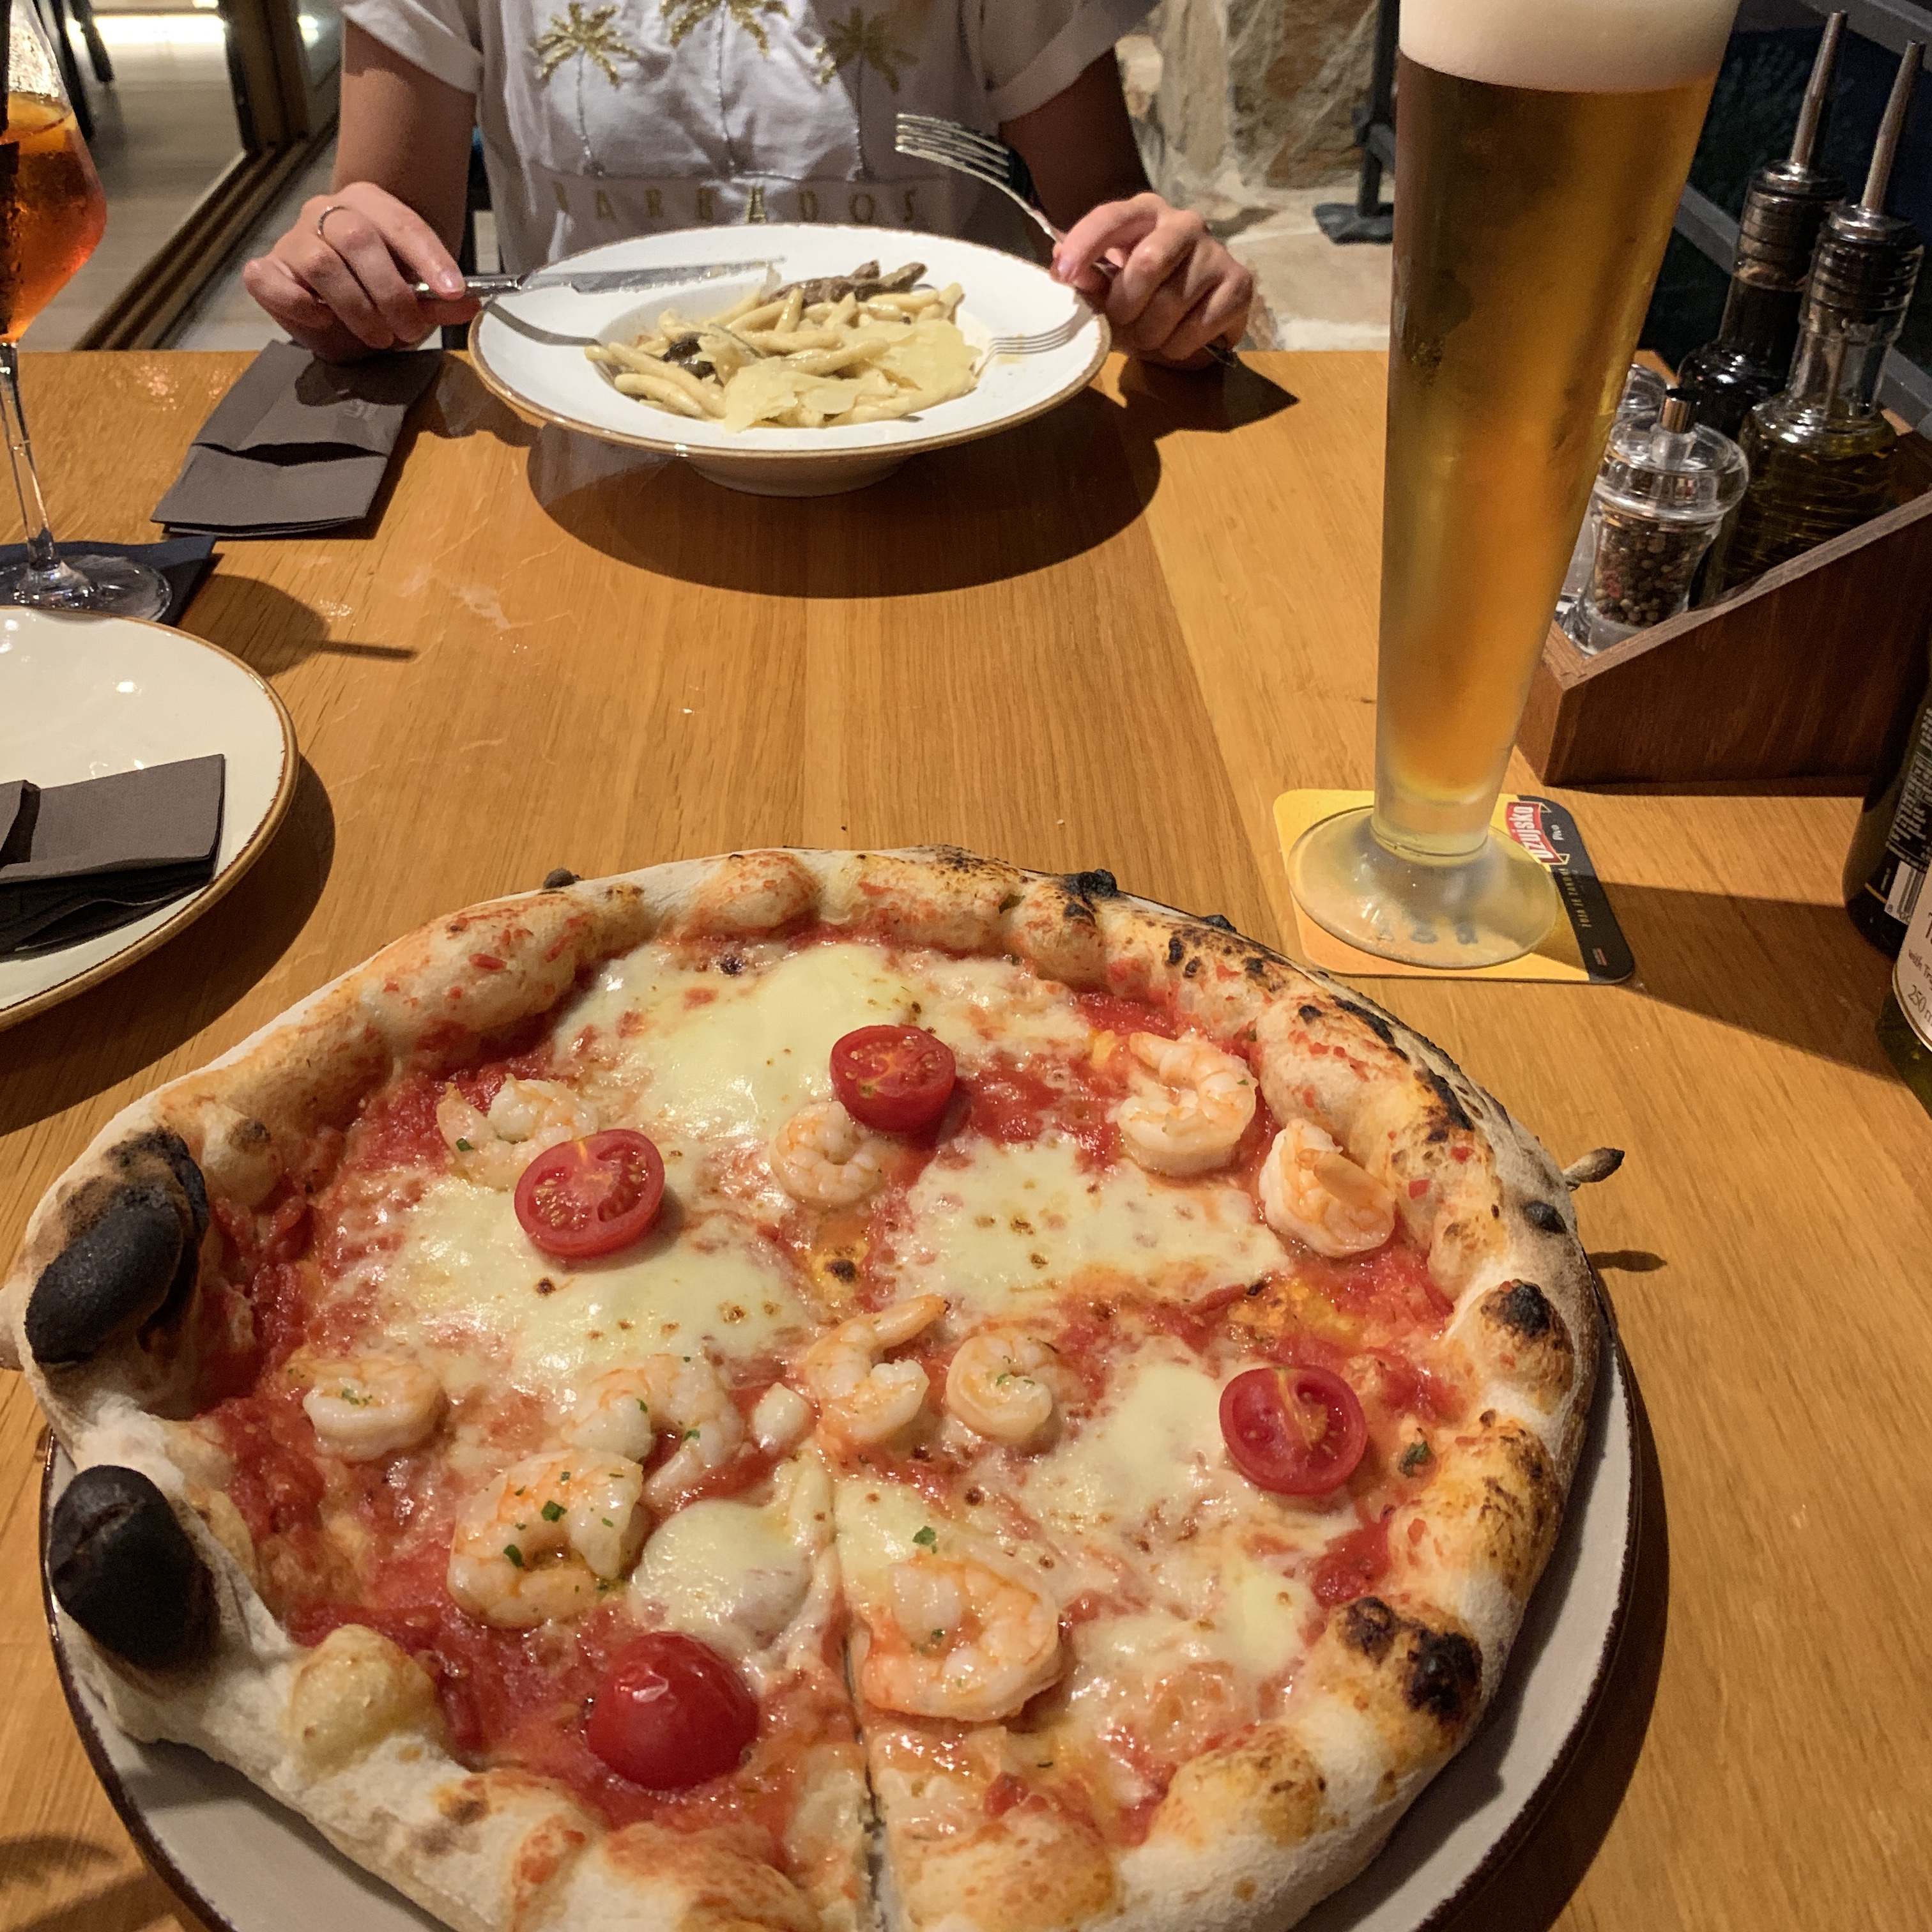 Juicy cheese and tomato pizza